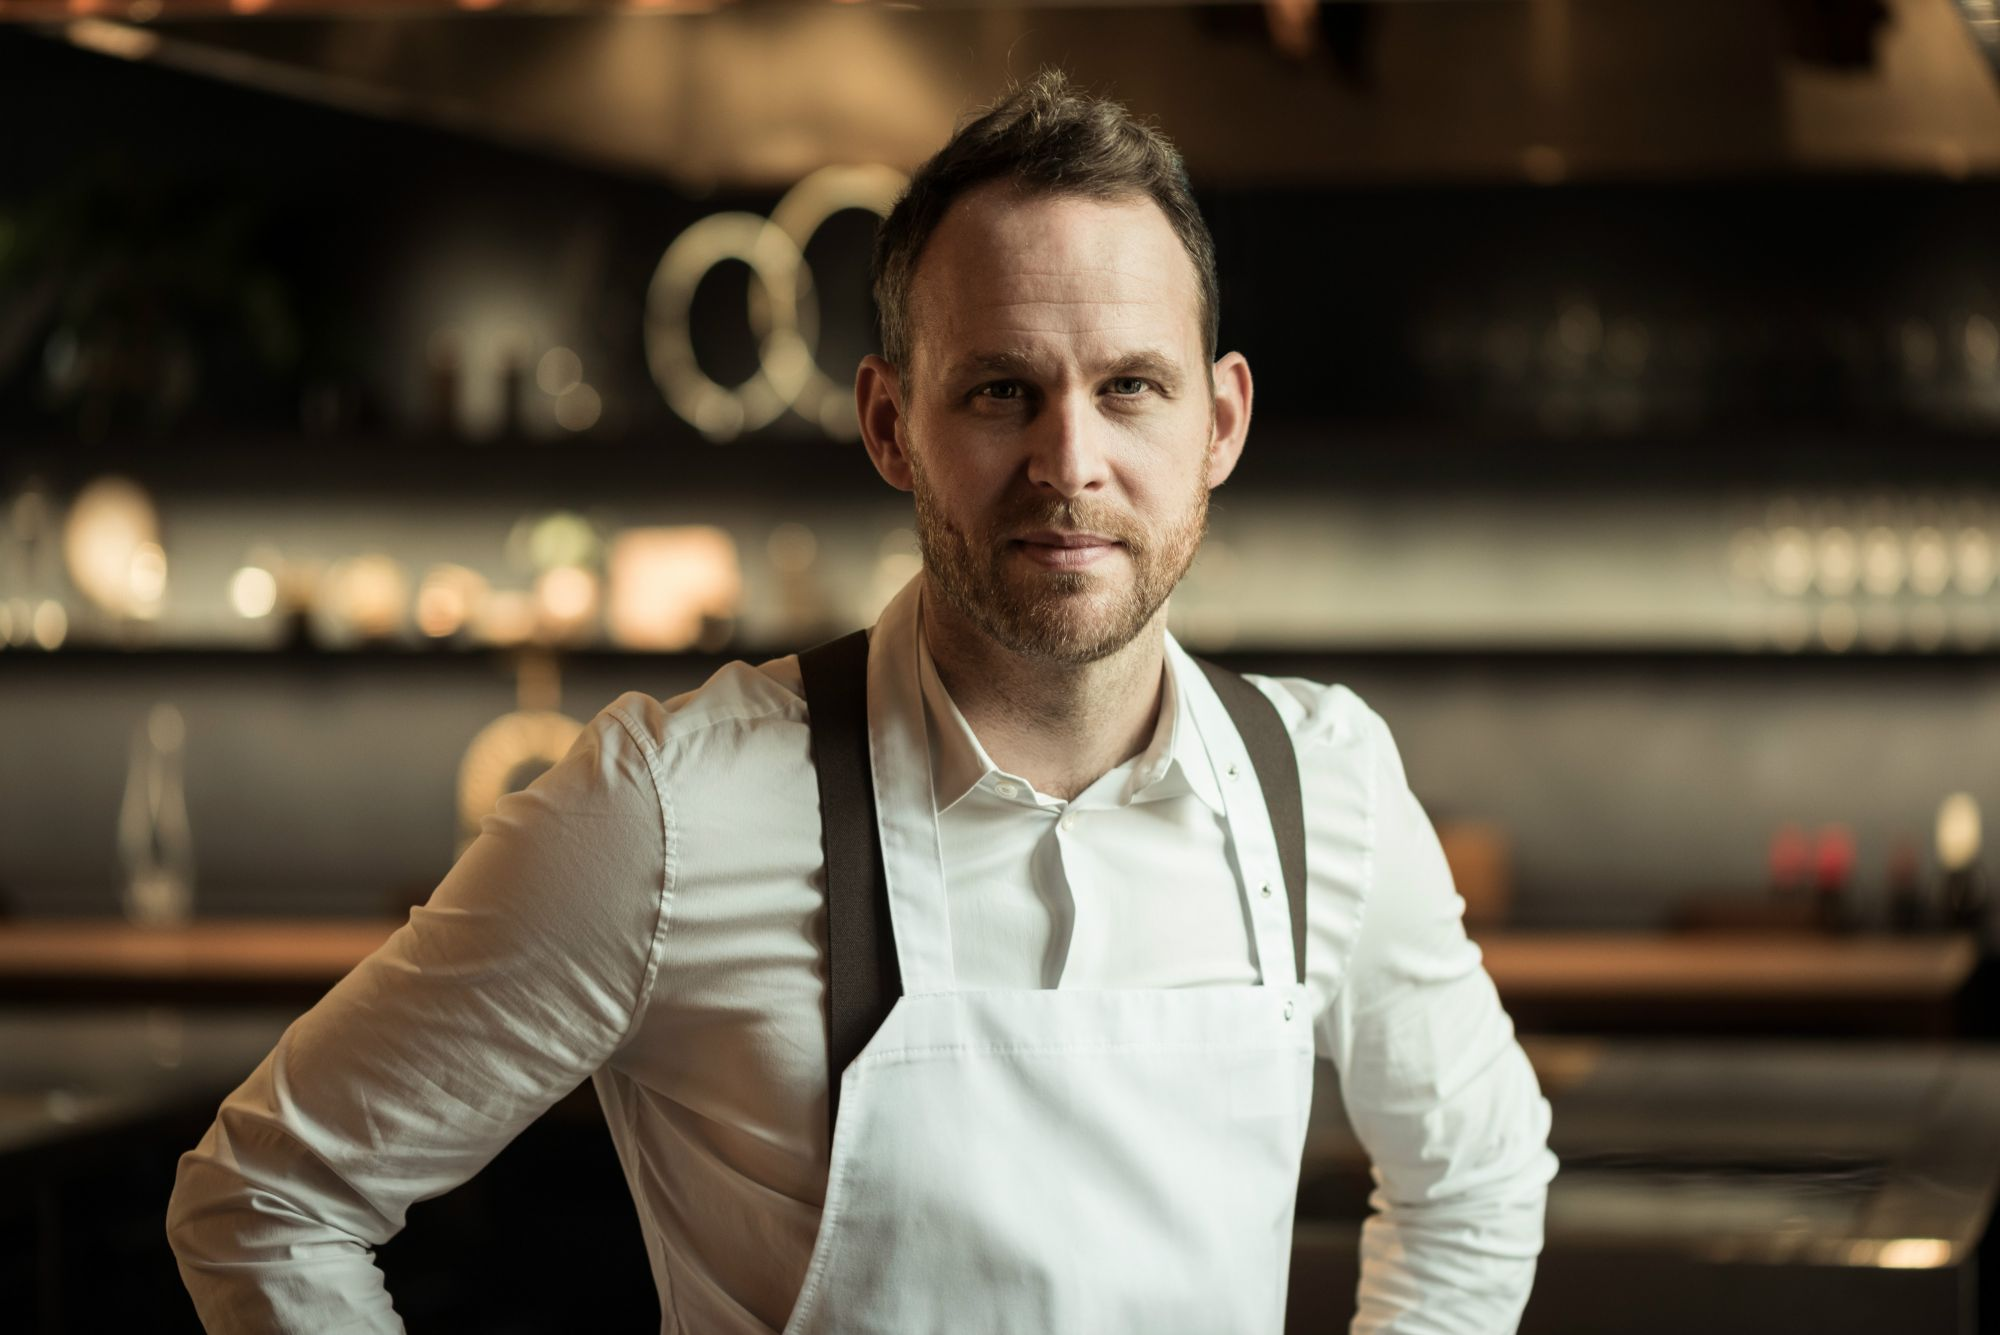 Swedish Top Chef Björn Frantzén Opens Restaurant Zén In Singapore